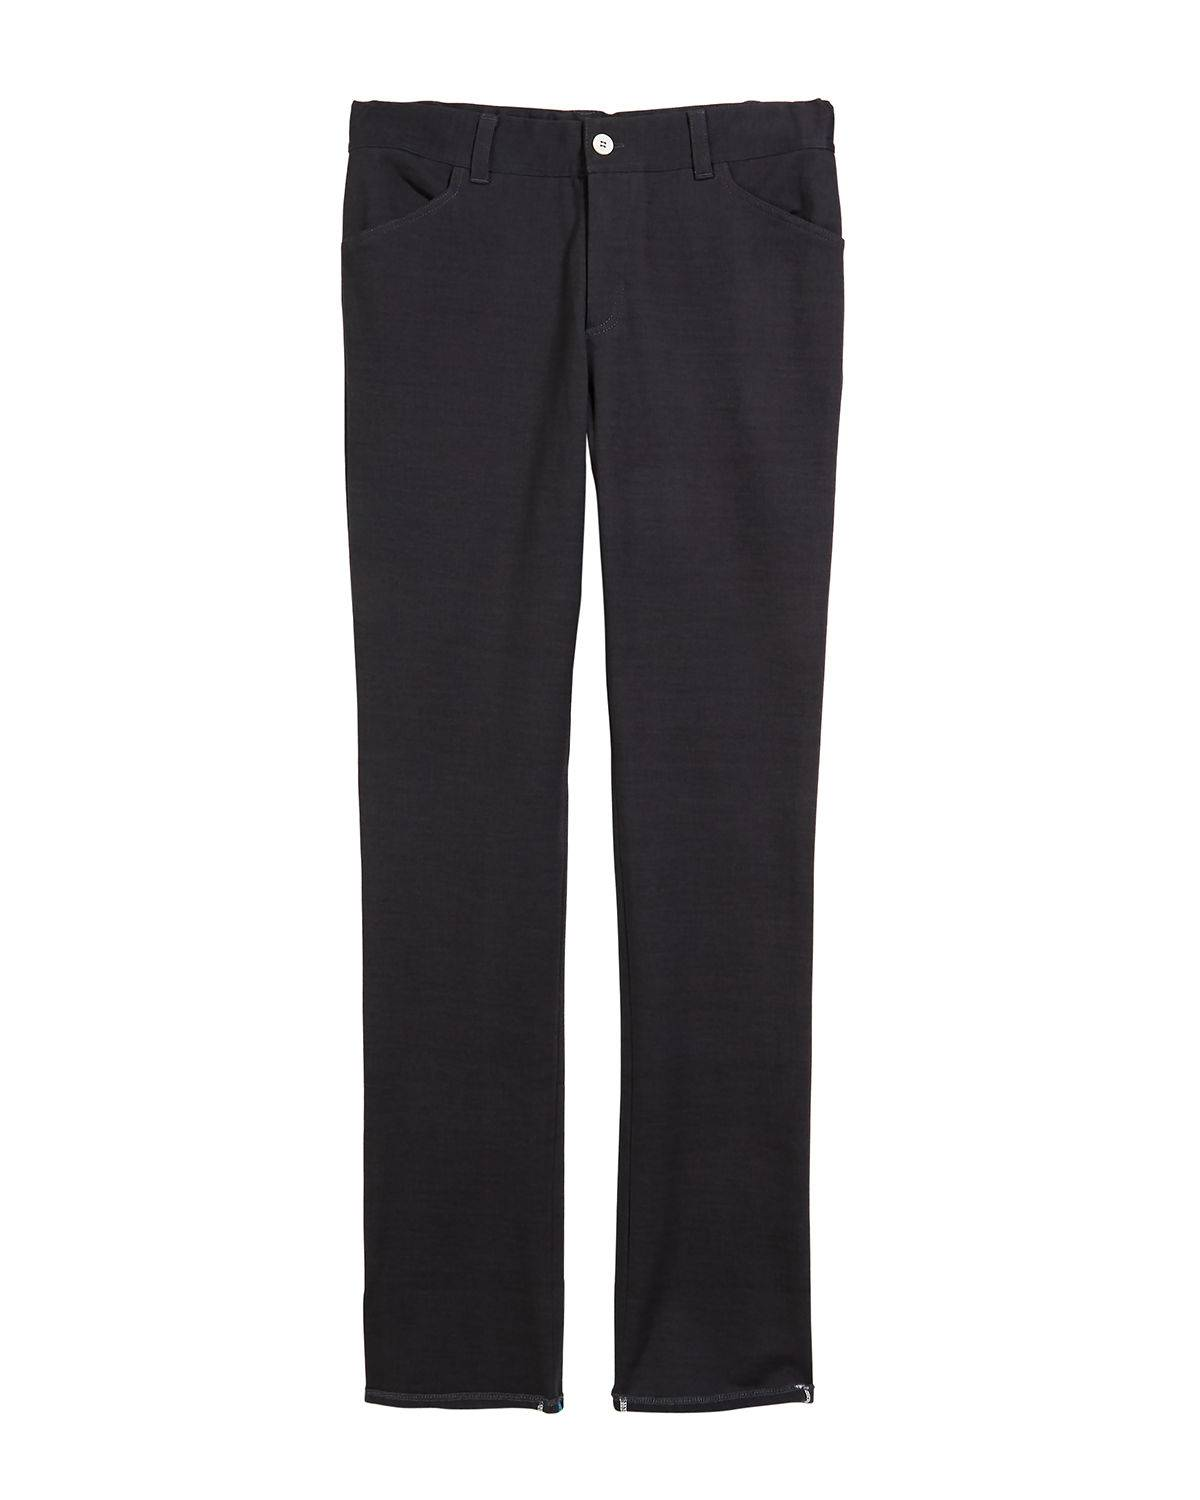 Stefano Ricci Boys' Sport Trousers, Size 10-14 - Size: 14